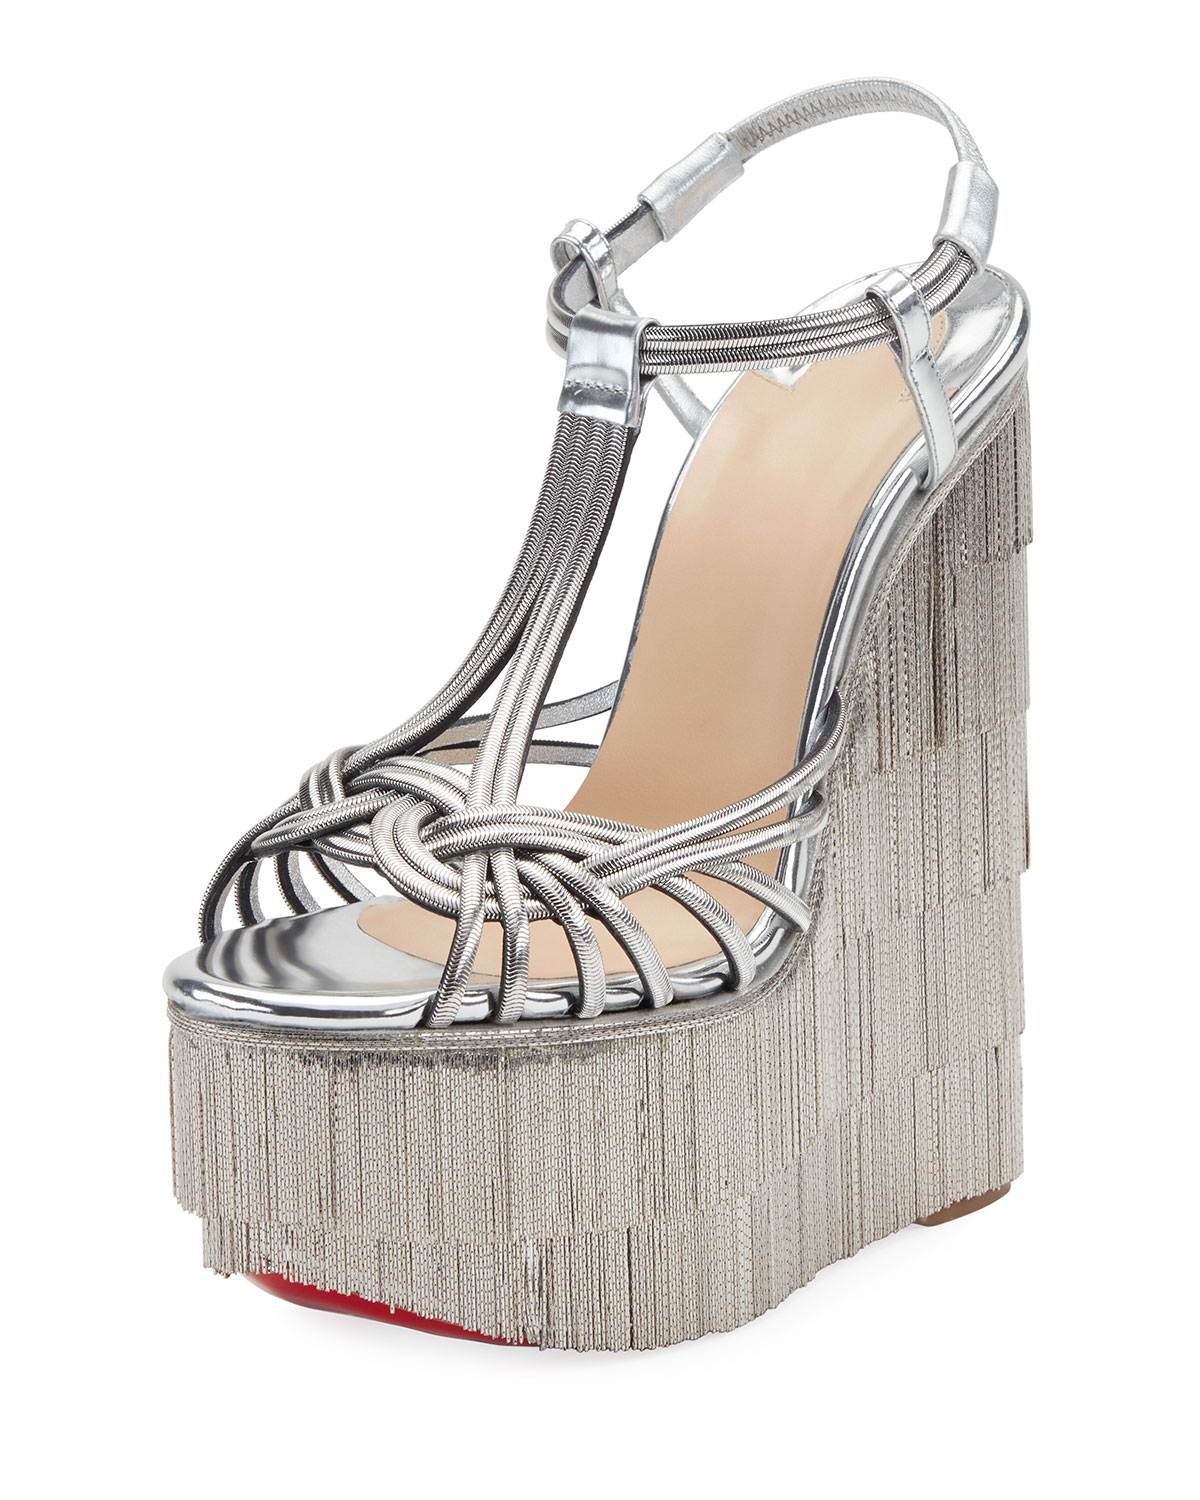 sale retailer 5b270 5e1f6 Espelio Platform Red Sole Sandals, Silver